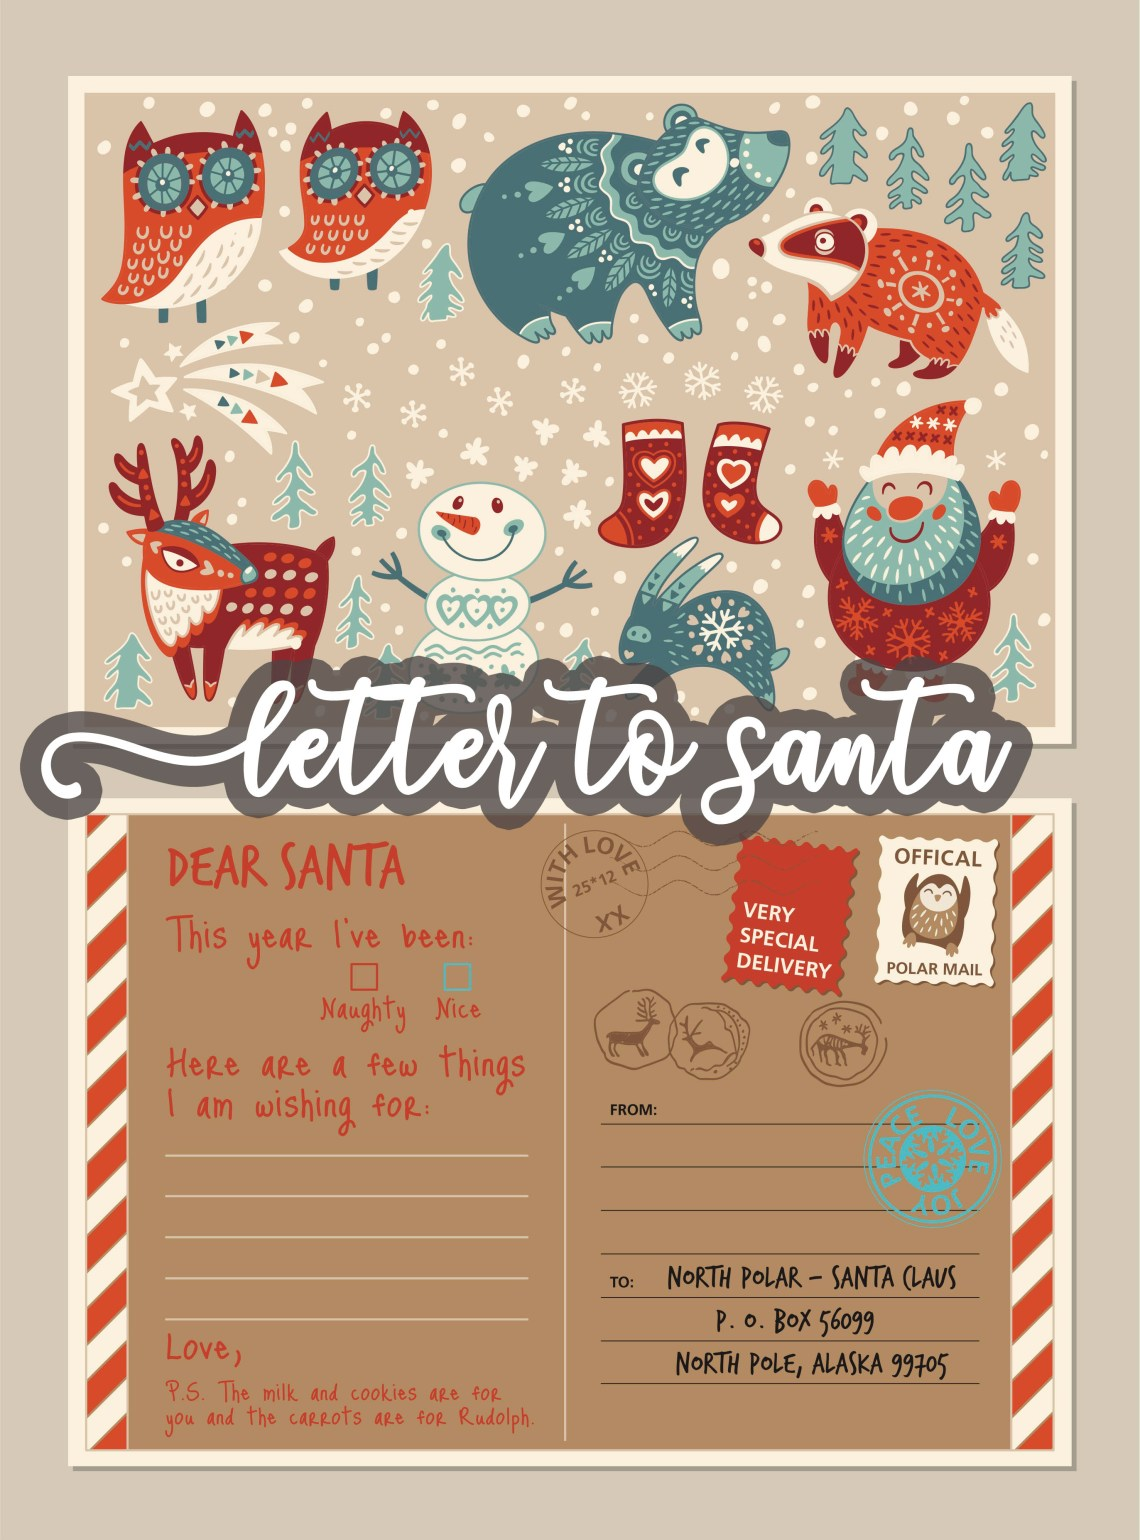 Letter to Santa - Printable kids letter to santa template via Misty Nelson, frostedevents